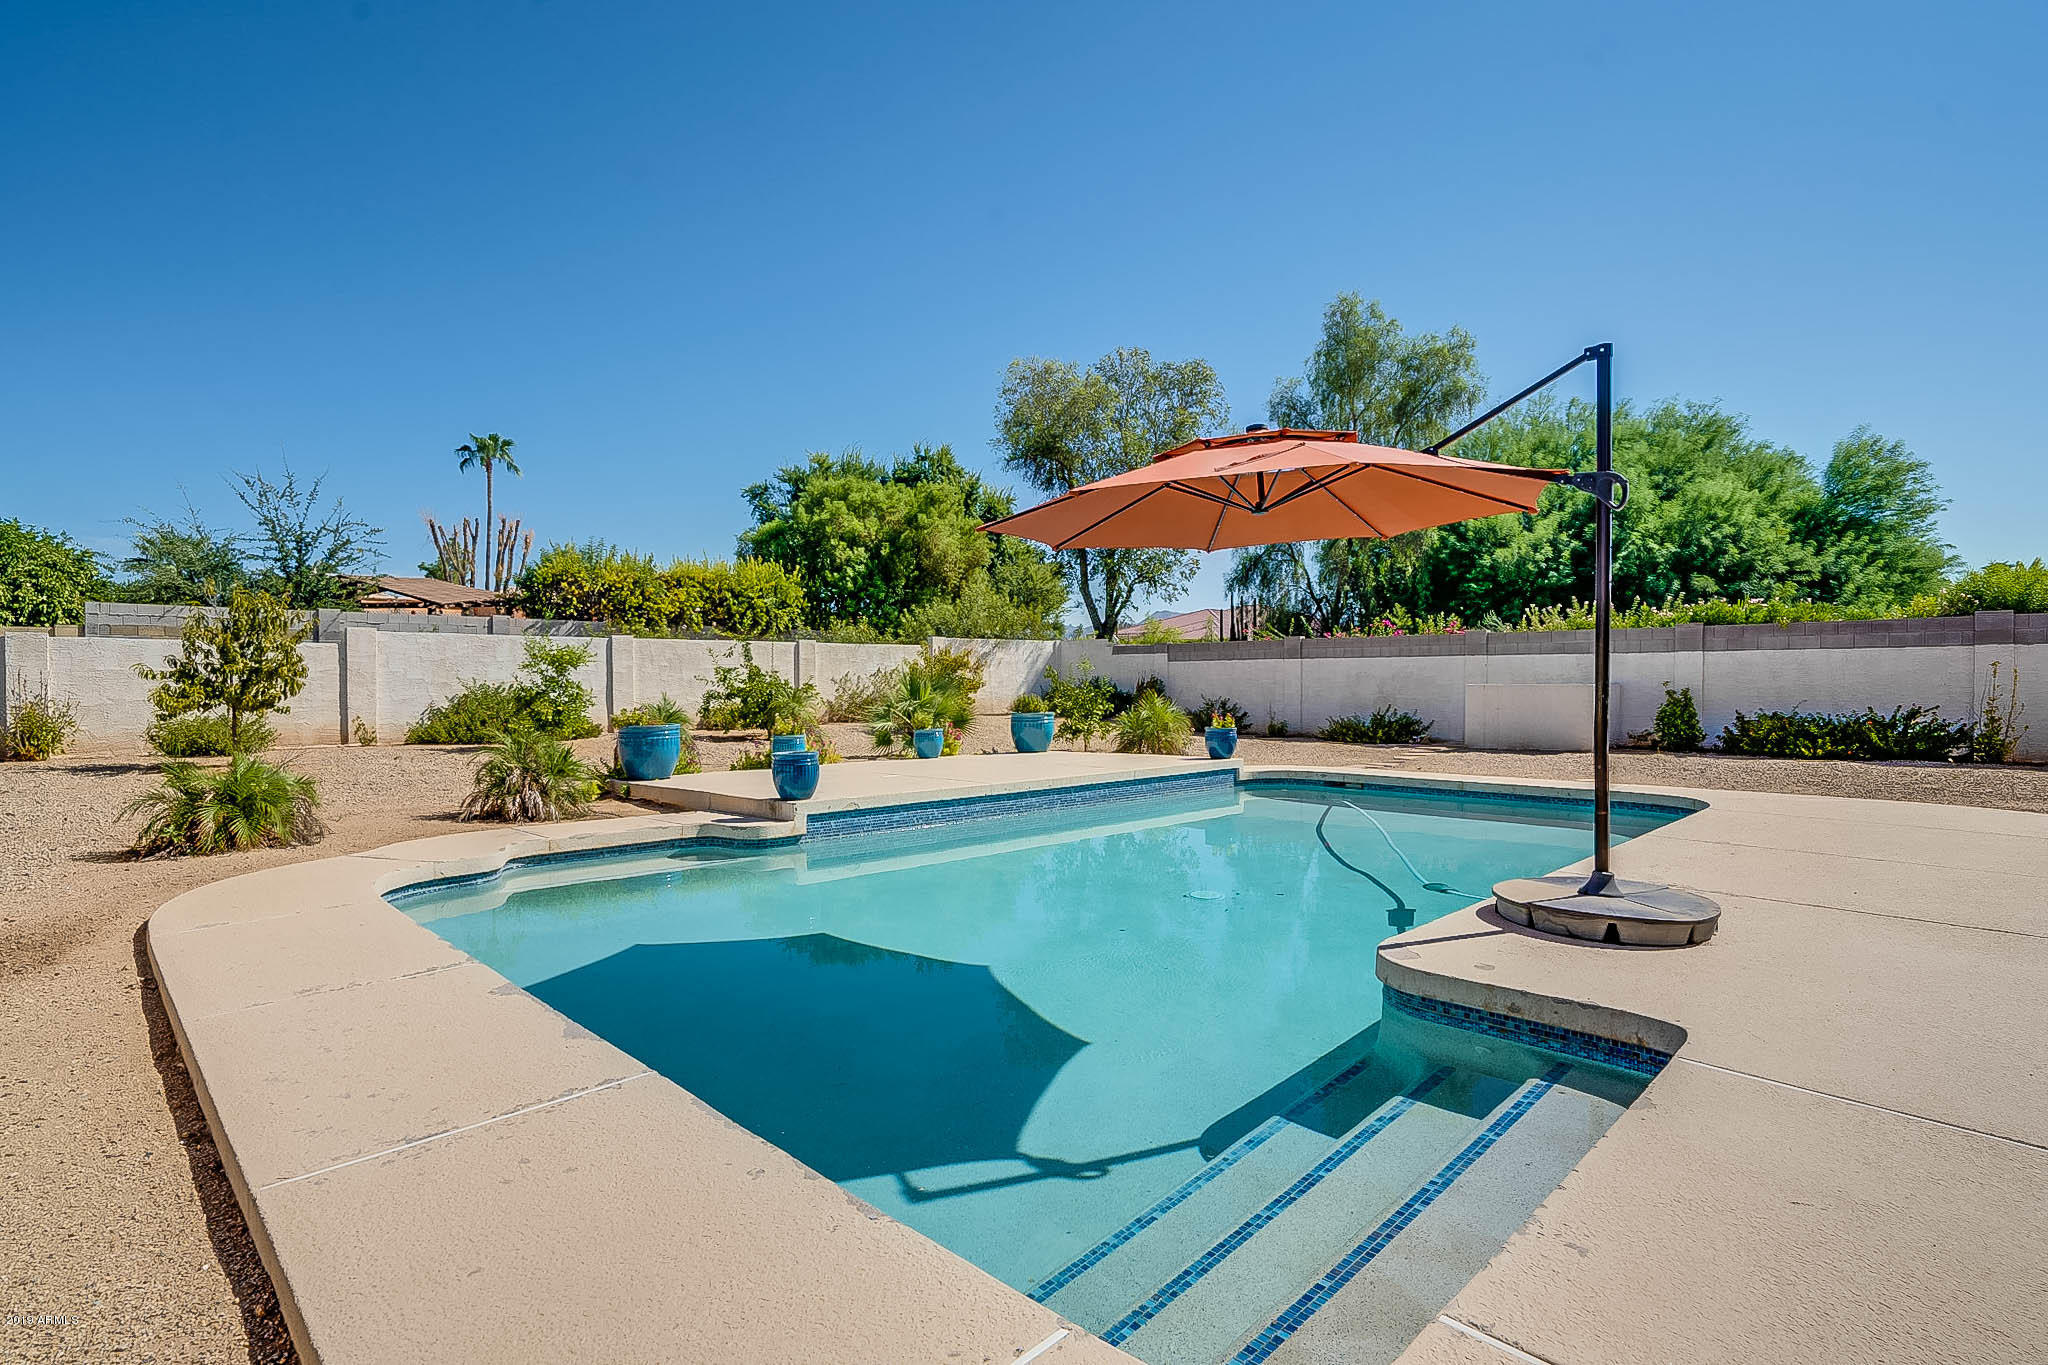 MLS 5968520 7638 E ASTER Drive, Scottsdale, AZ 85260 Scottsdale AZ Private Pool